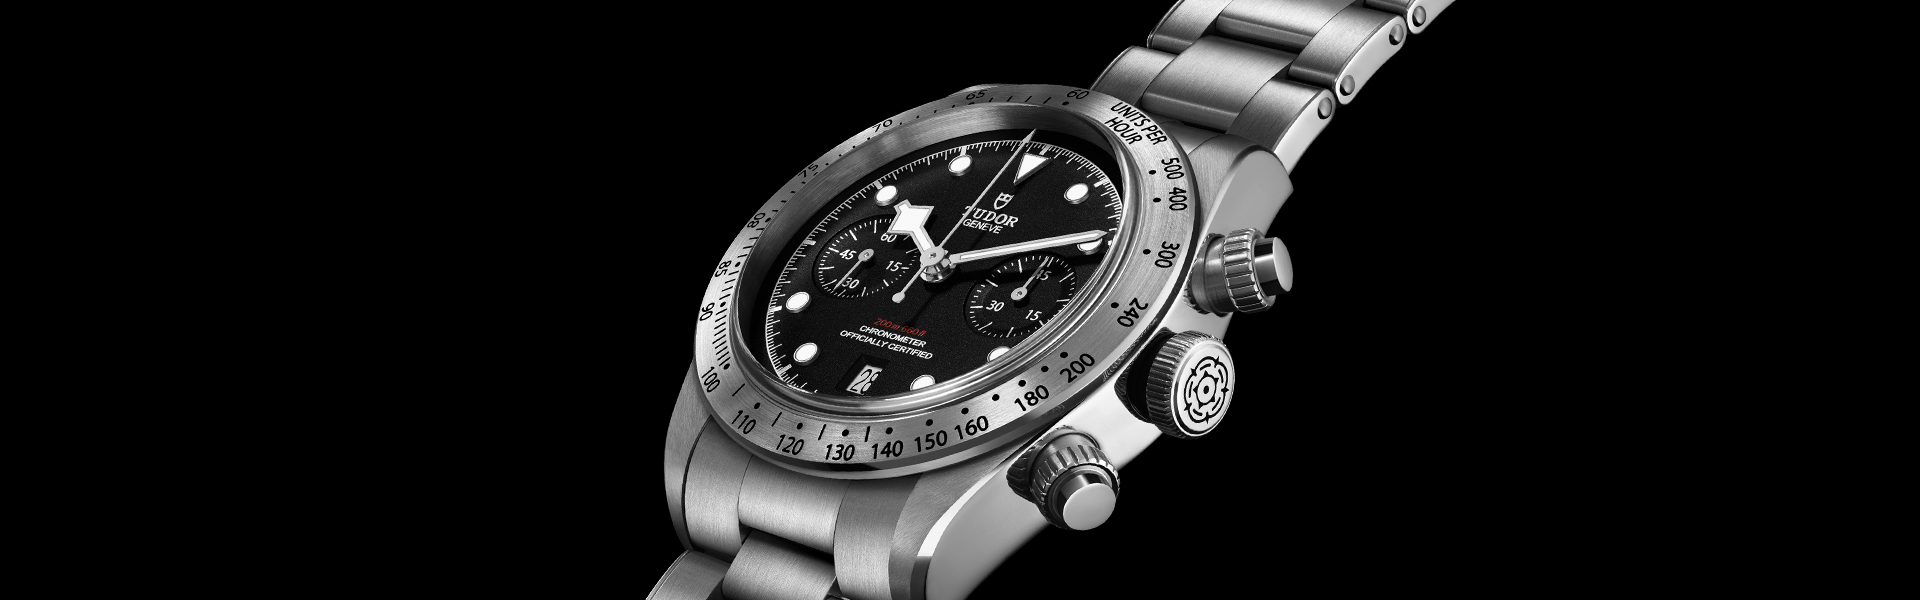 The Tudor Black Bay Story: How It Became an Icon